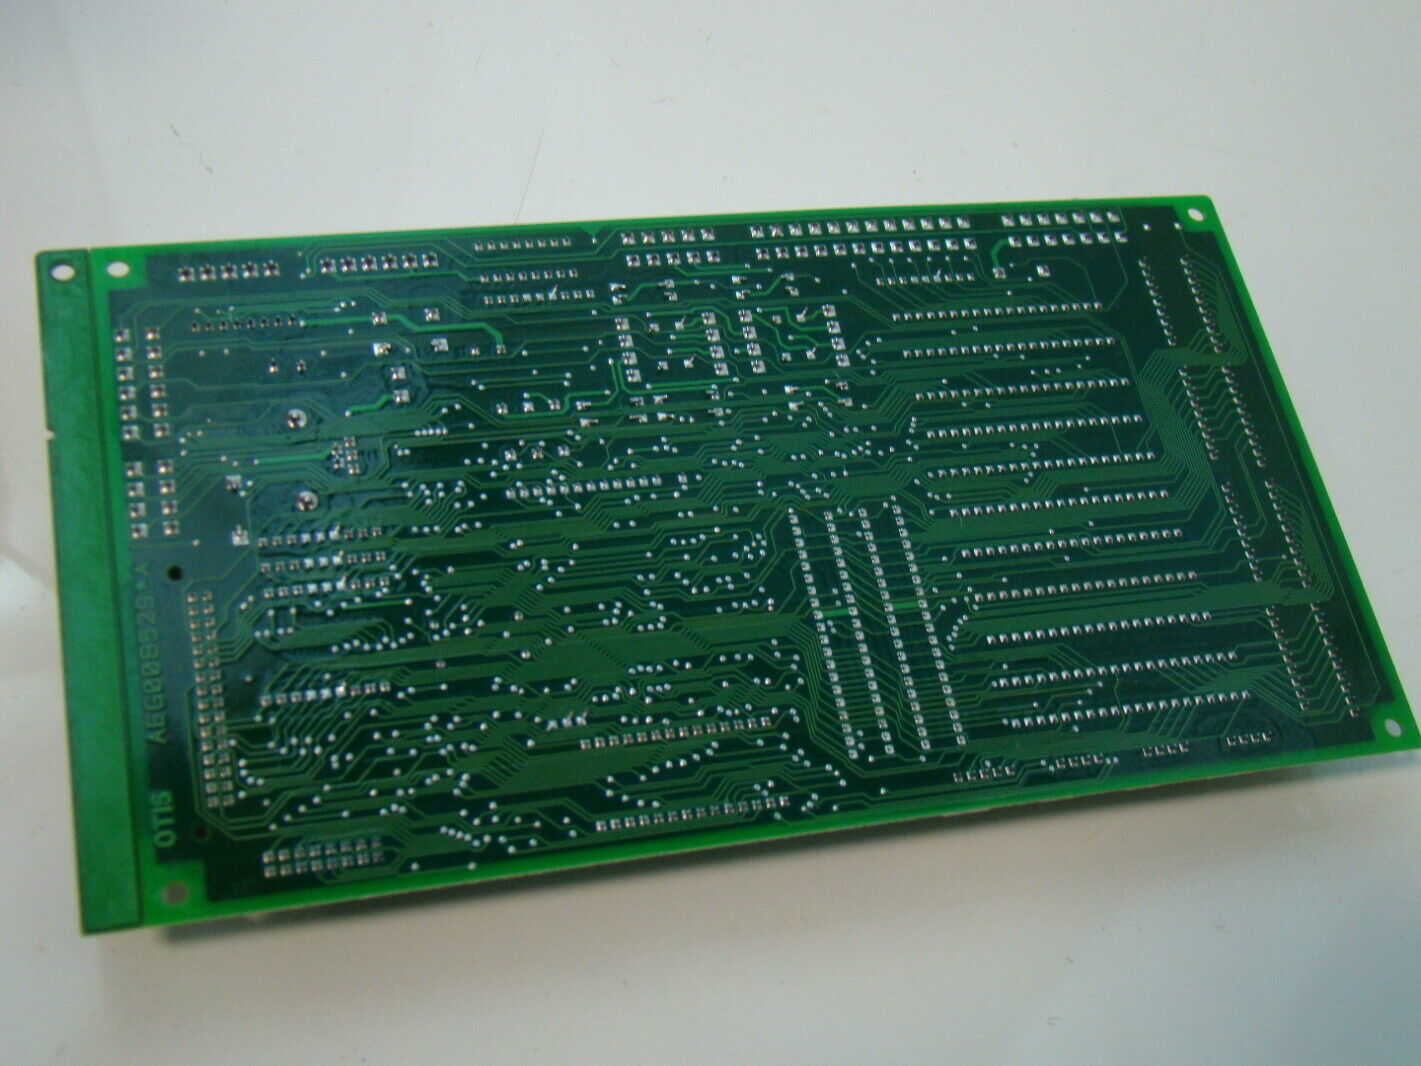 Details about LG Otis Elevator PC Board DCL 244 AEG03C609 #20643F